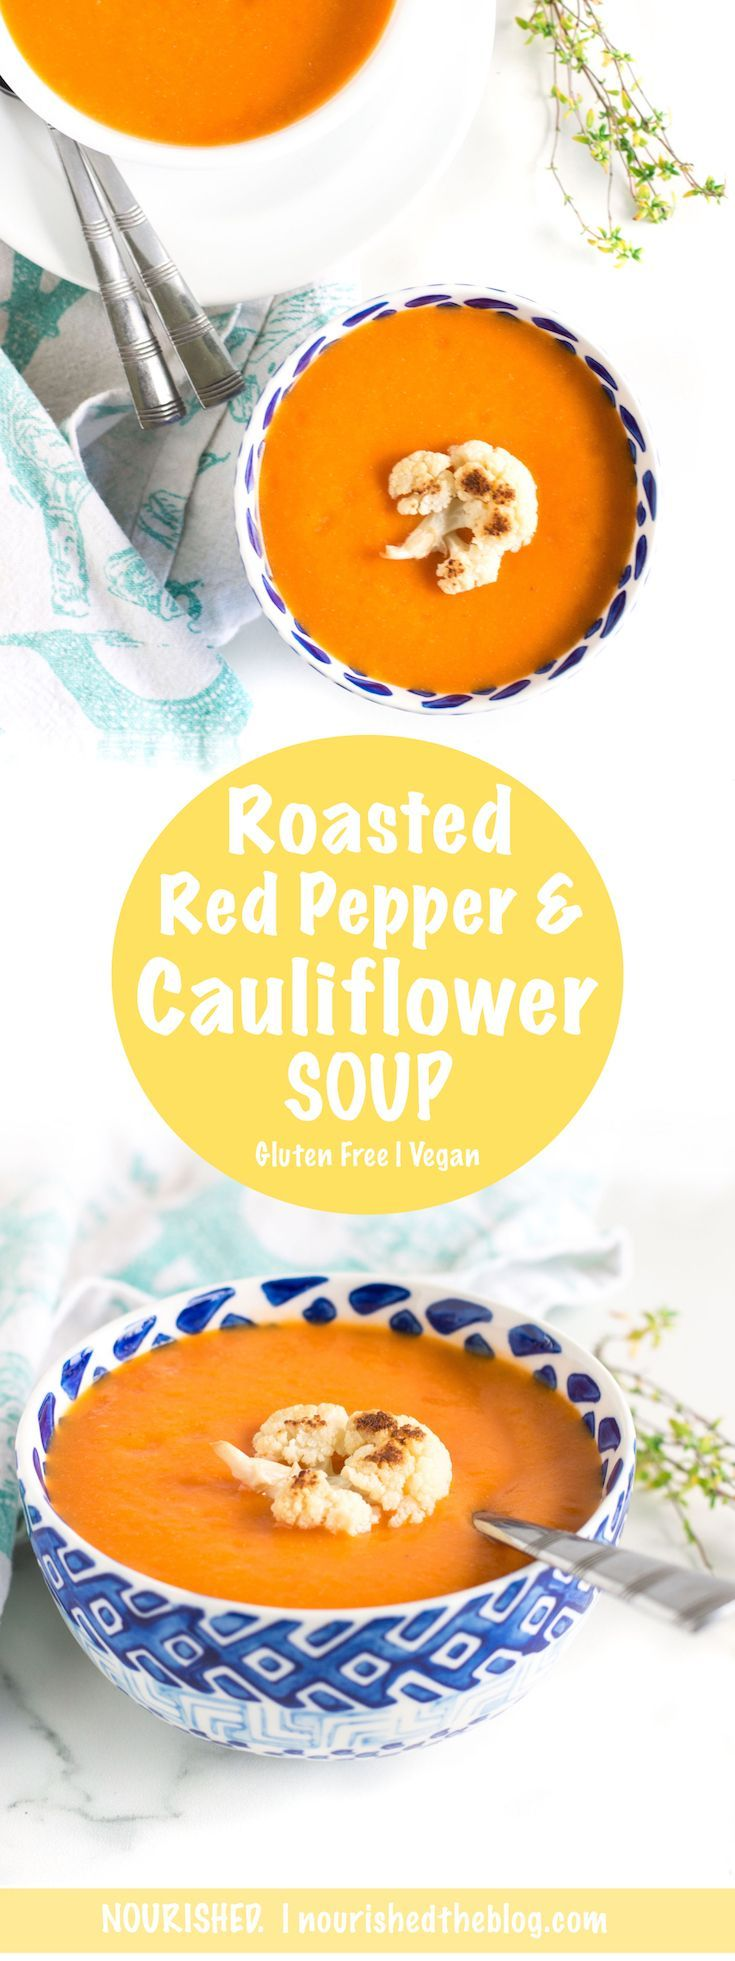 Vegan Roasted Red Pepper Cauliflower Soup is rich and creamy without the dairy or the gluten! This gluten free roasted vegetable soup is easy to make with roasted red peppers, cauliflower, onions, garlic and thyme and could be the perfect addition to any weeknight dinner. Warm up with soup all fall long!